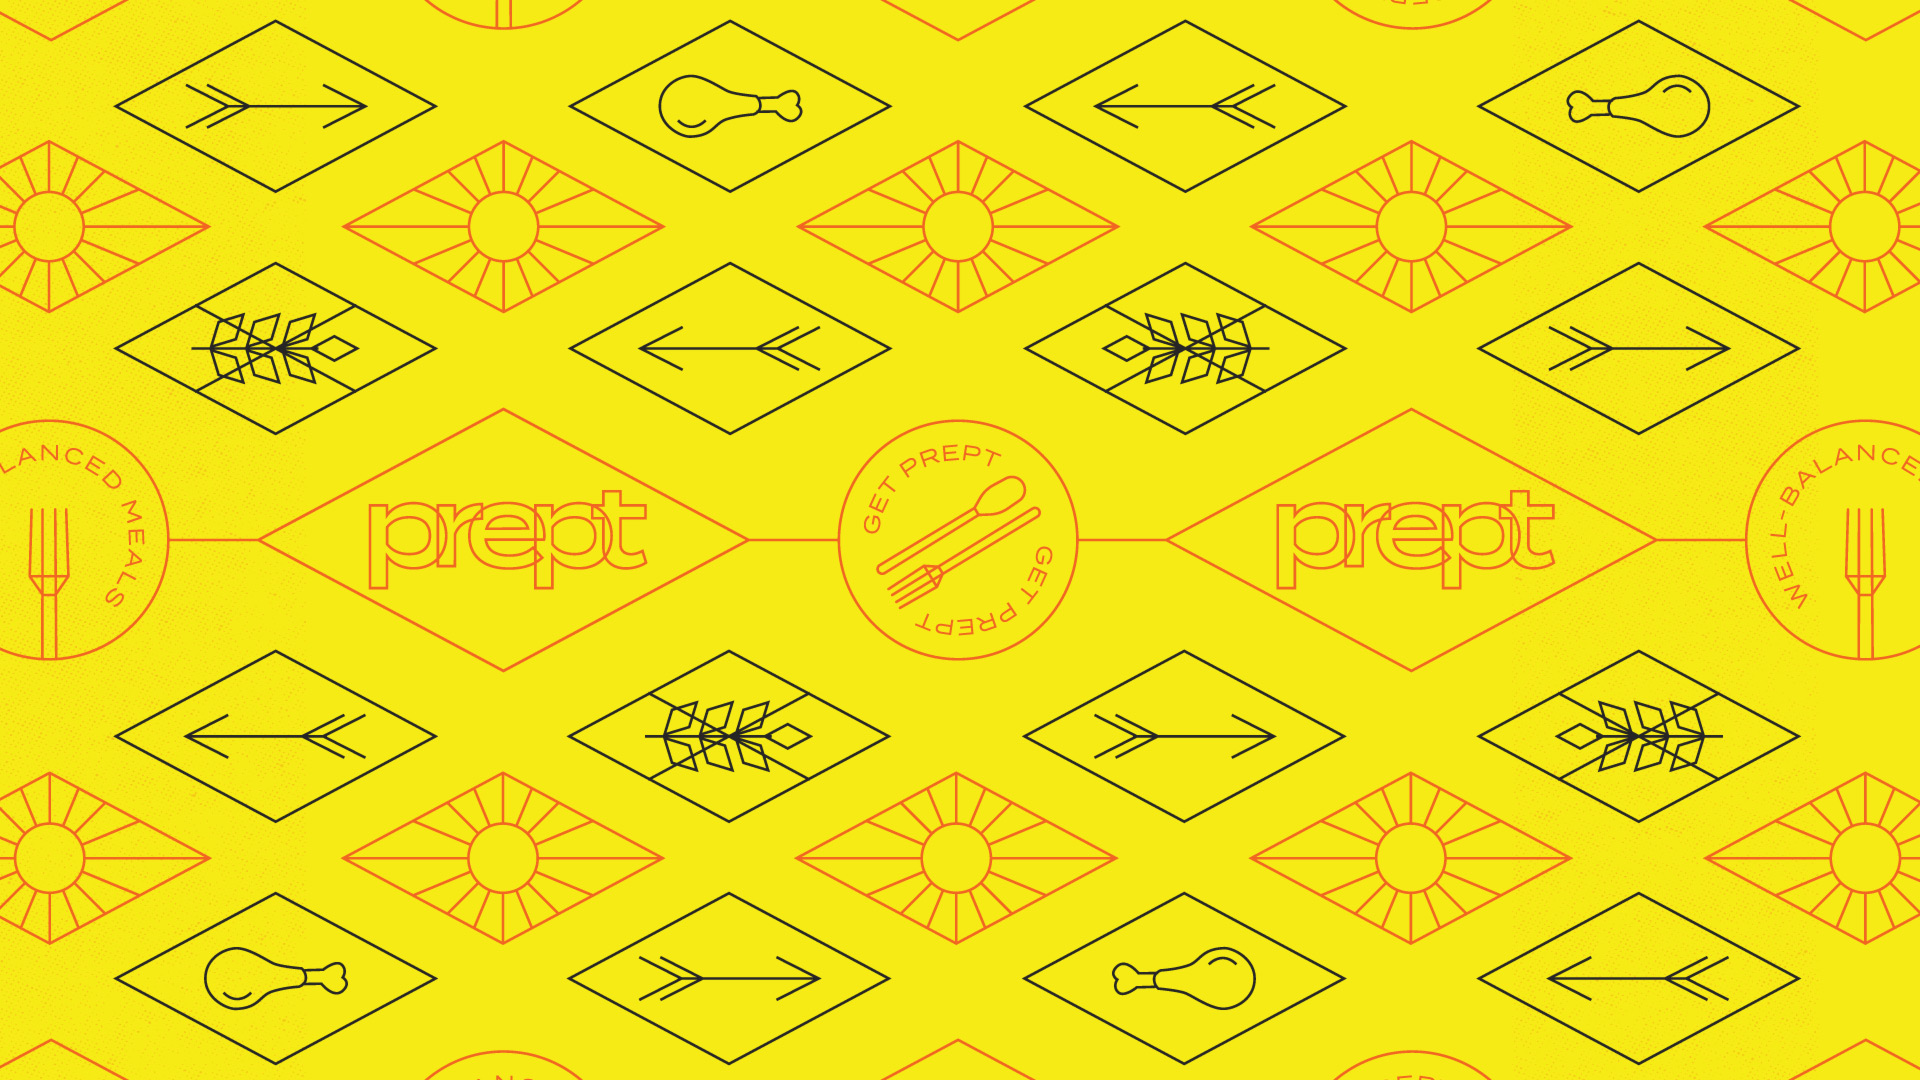 meal-delivery-branding-pattern-yellow